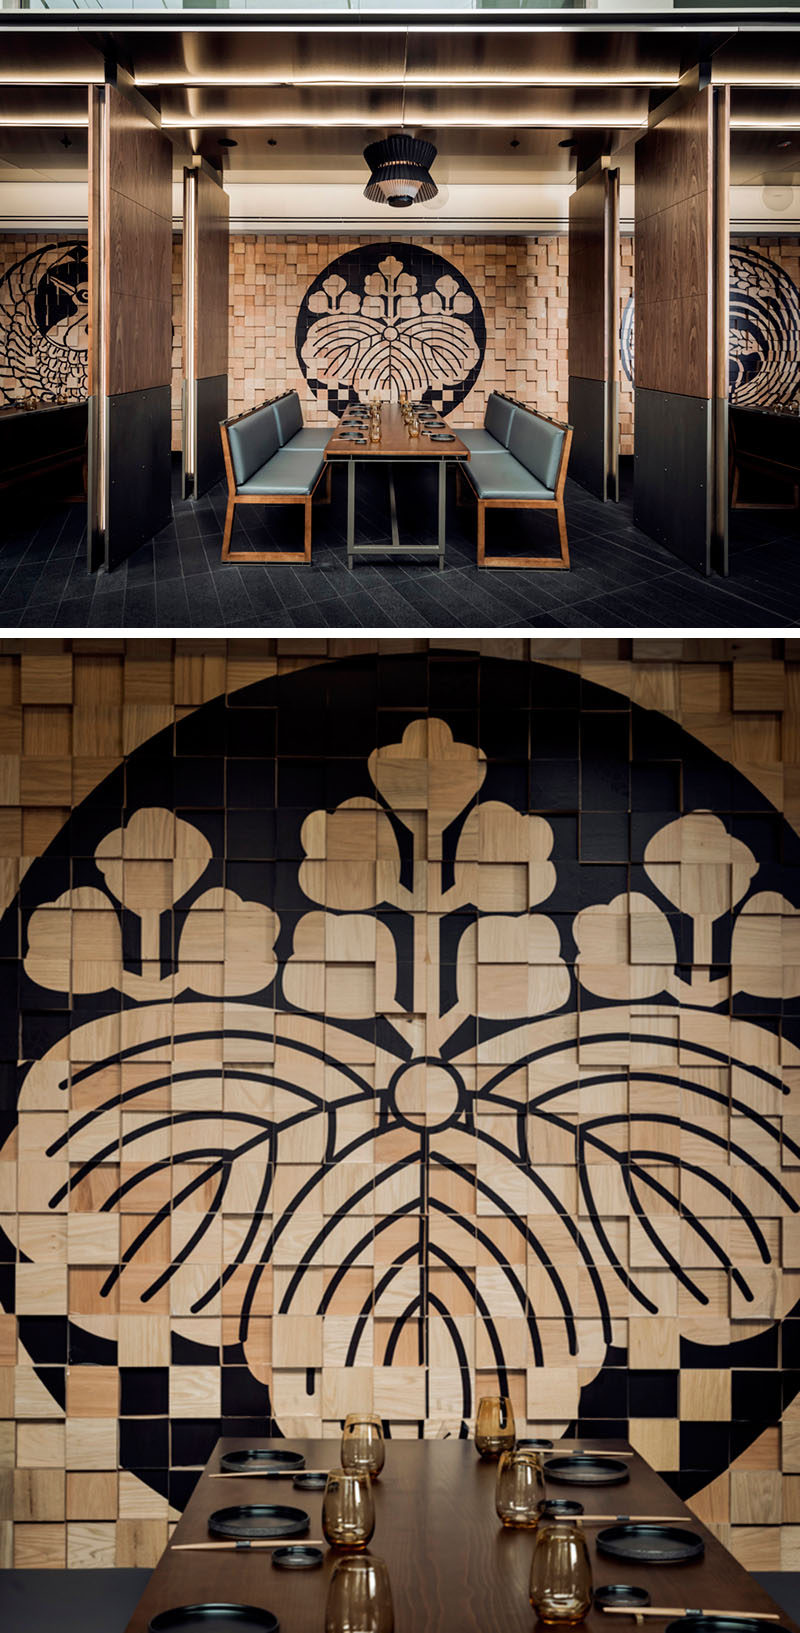 Wood Blocks Along The Back Wall Of This Restaurant Have Been Painted To  Create Beautiful Dark Designs That Still Keep The Wood Grains Visible.